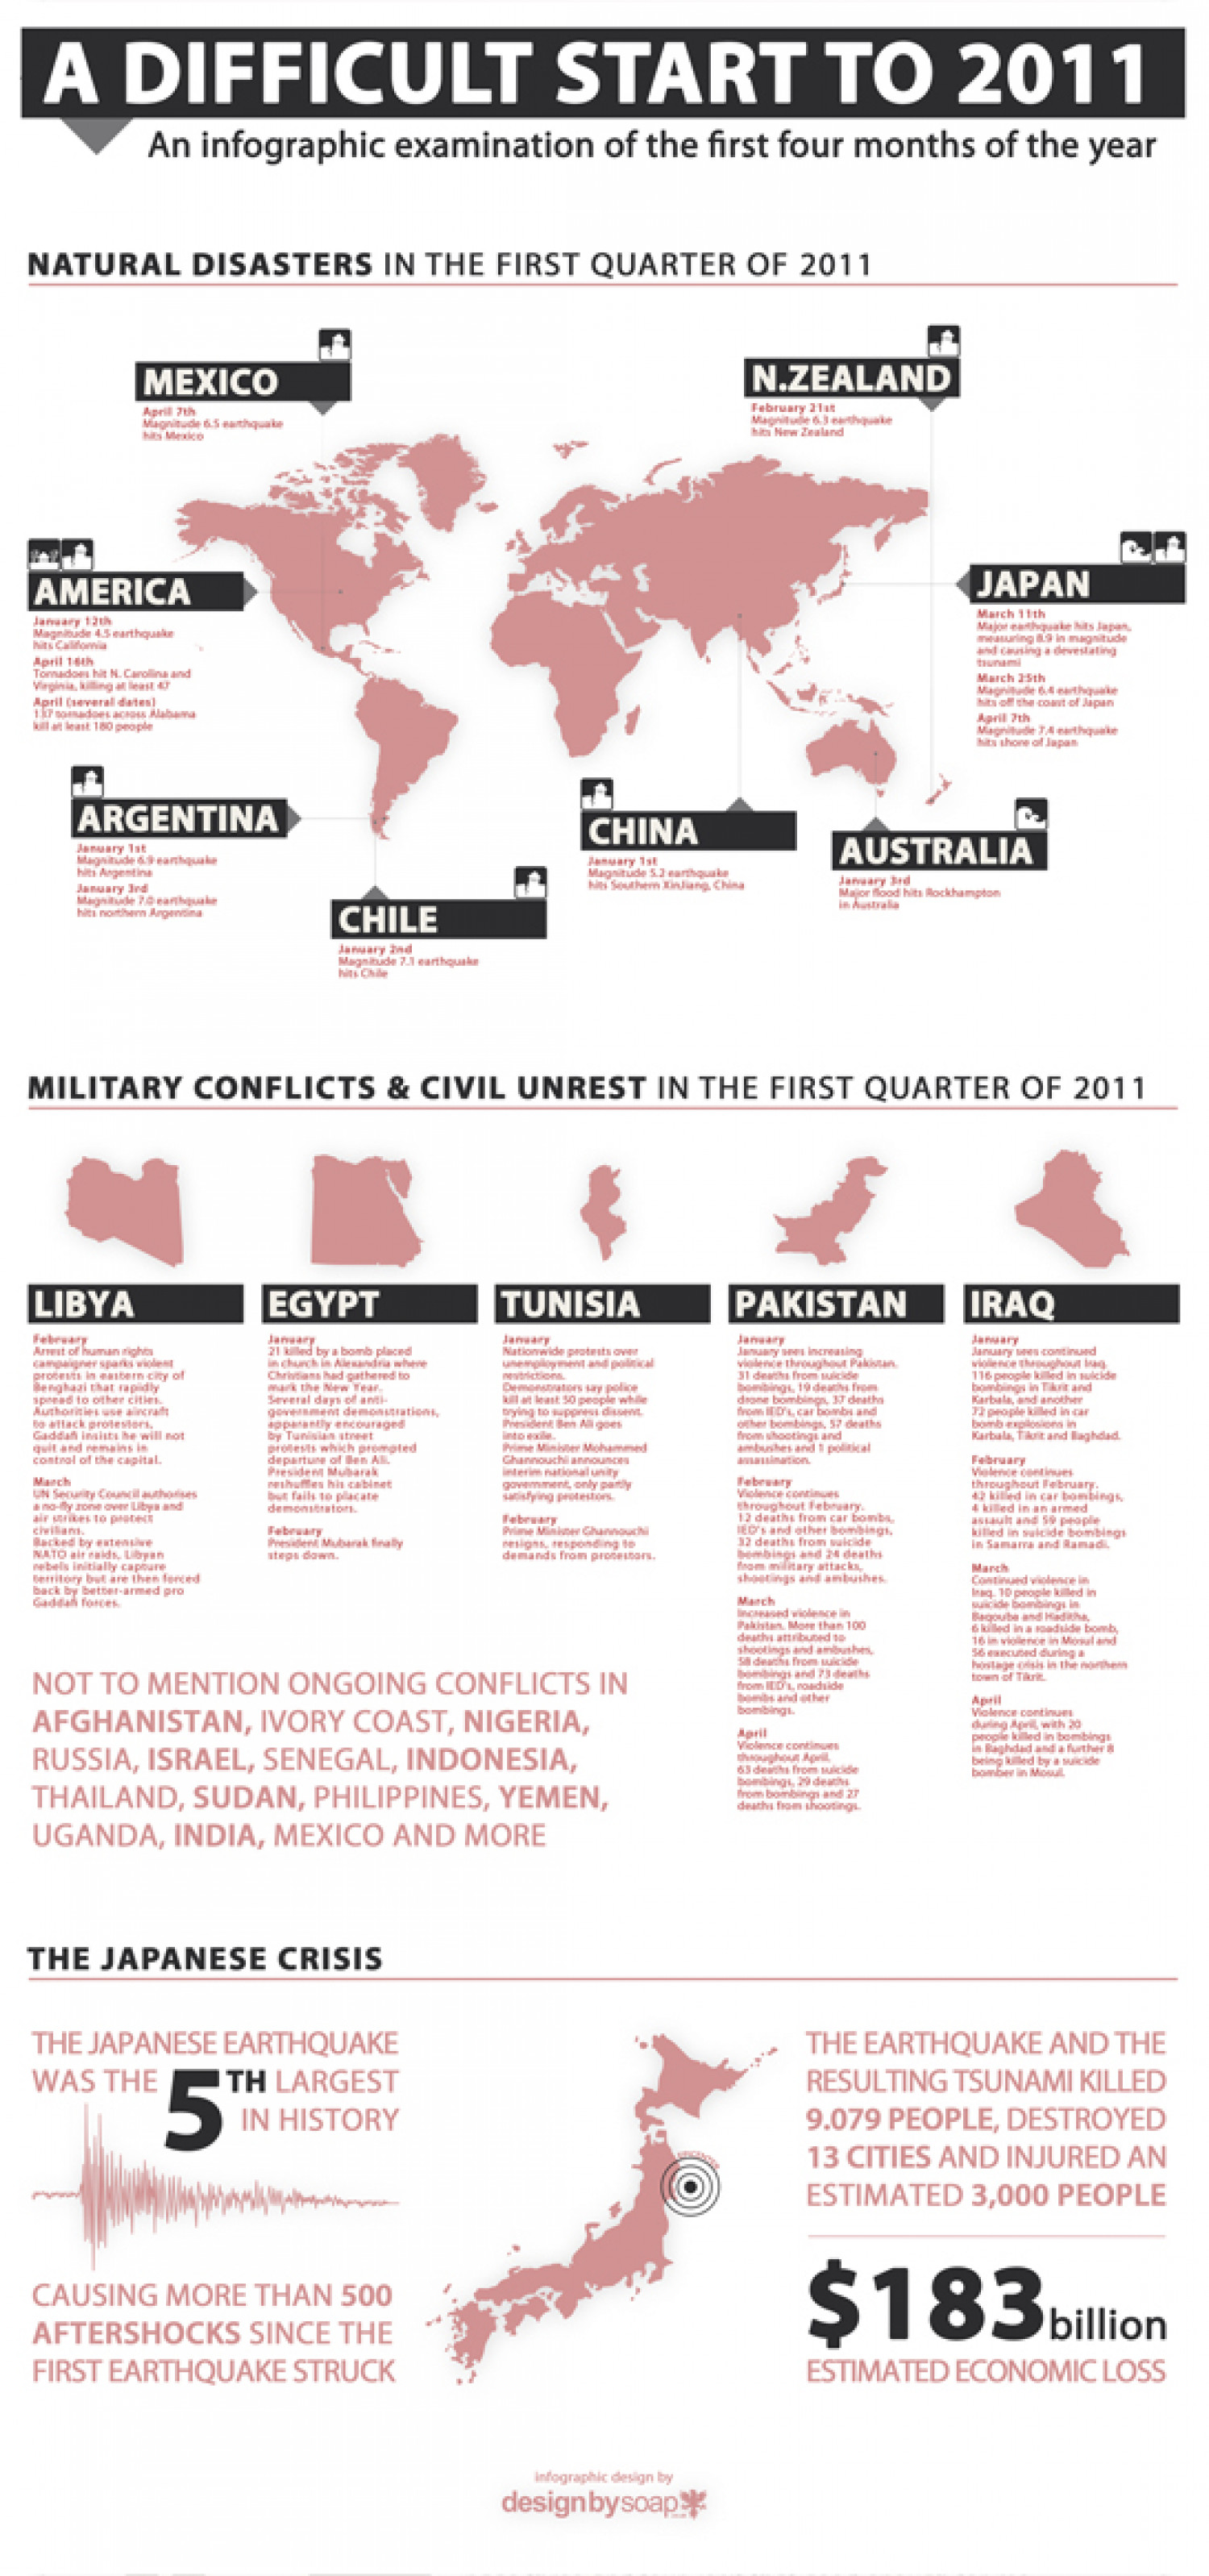 A Difficult Start To 2011 Infographic